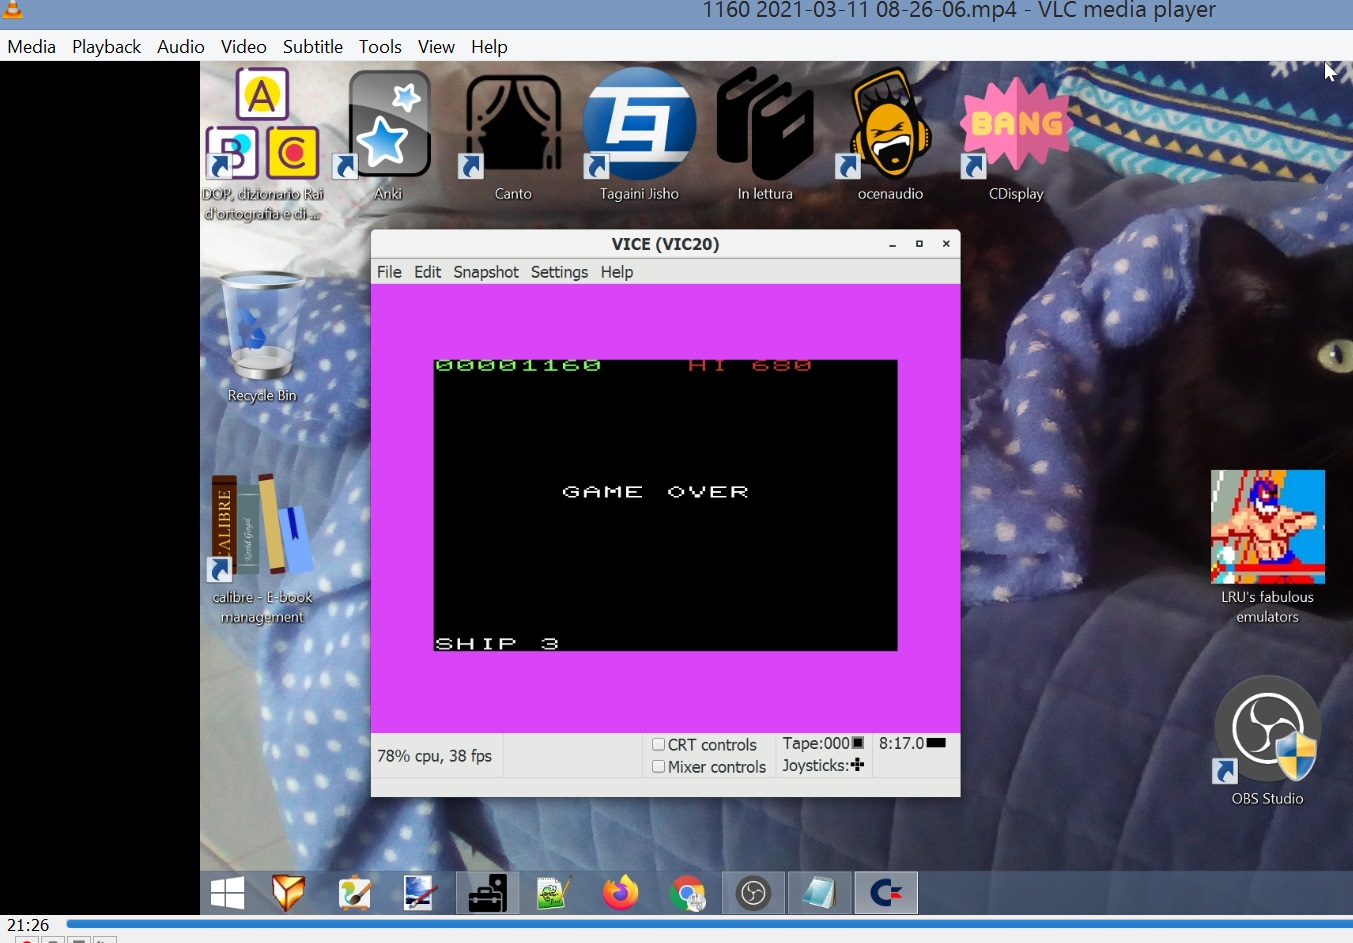 LuigiRuffolo: Asteroids 5 (Commodore VIC-20 Emulated) 1,160 points on 2021-03-11 02:21:44